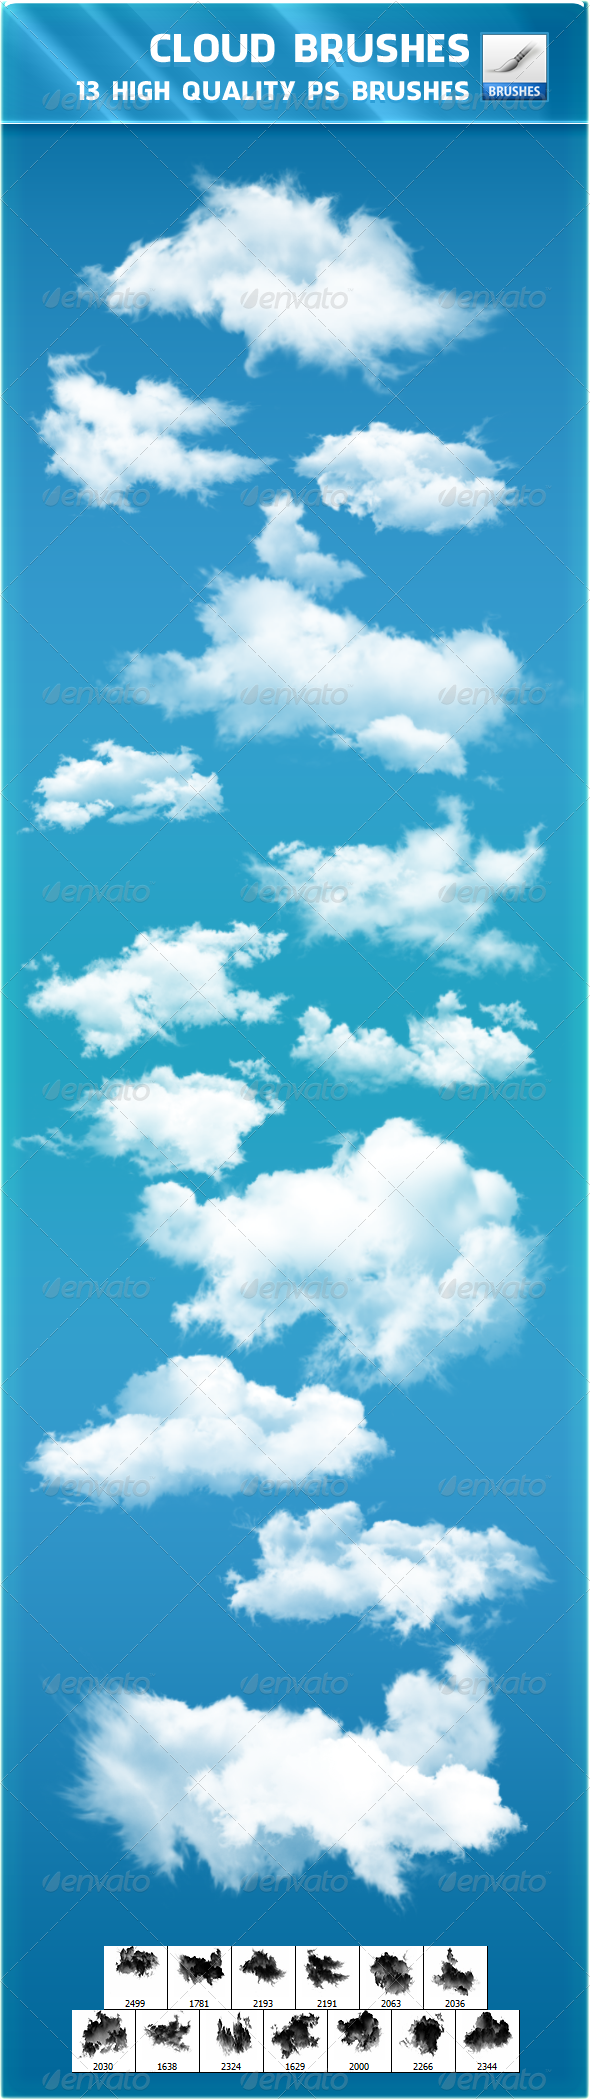 Sky Random Photoshop Brushes from GraphicRiver